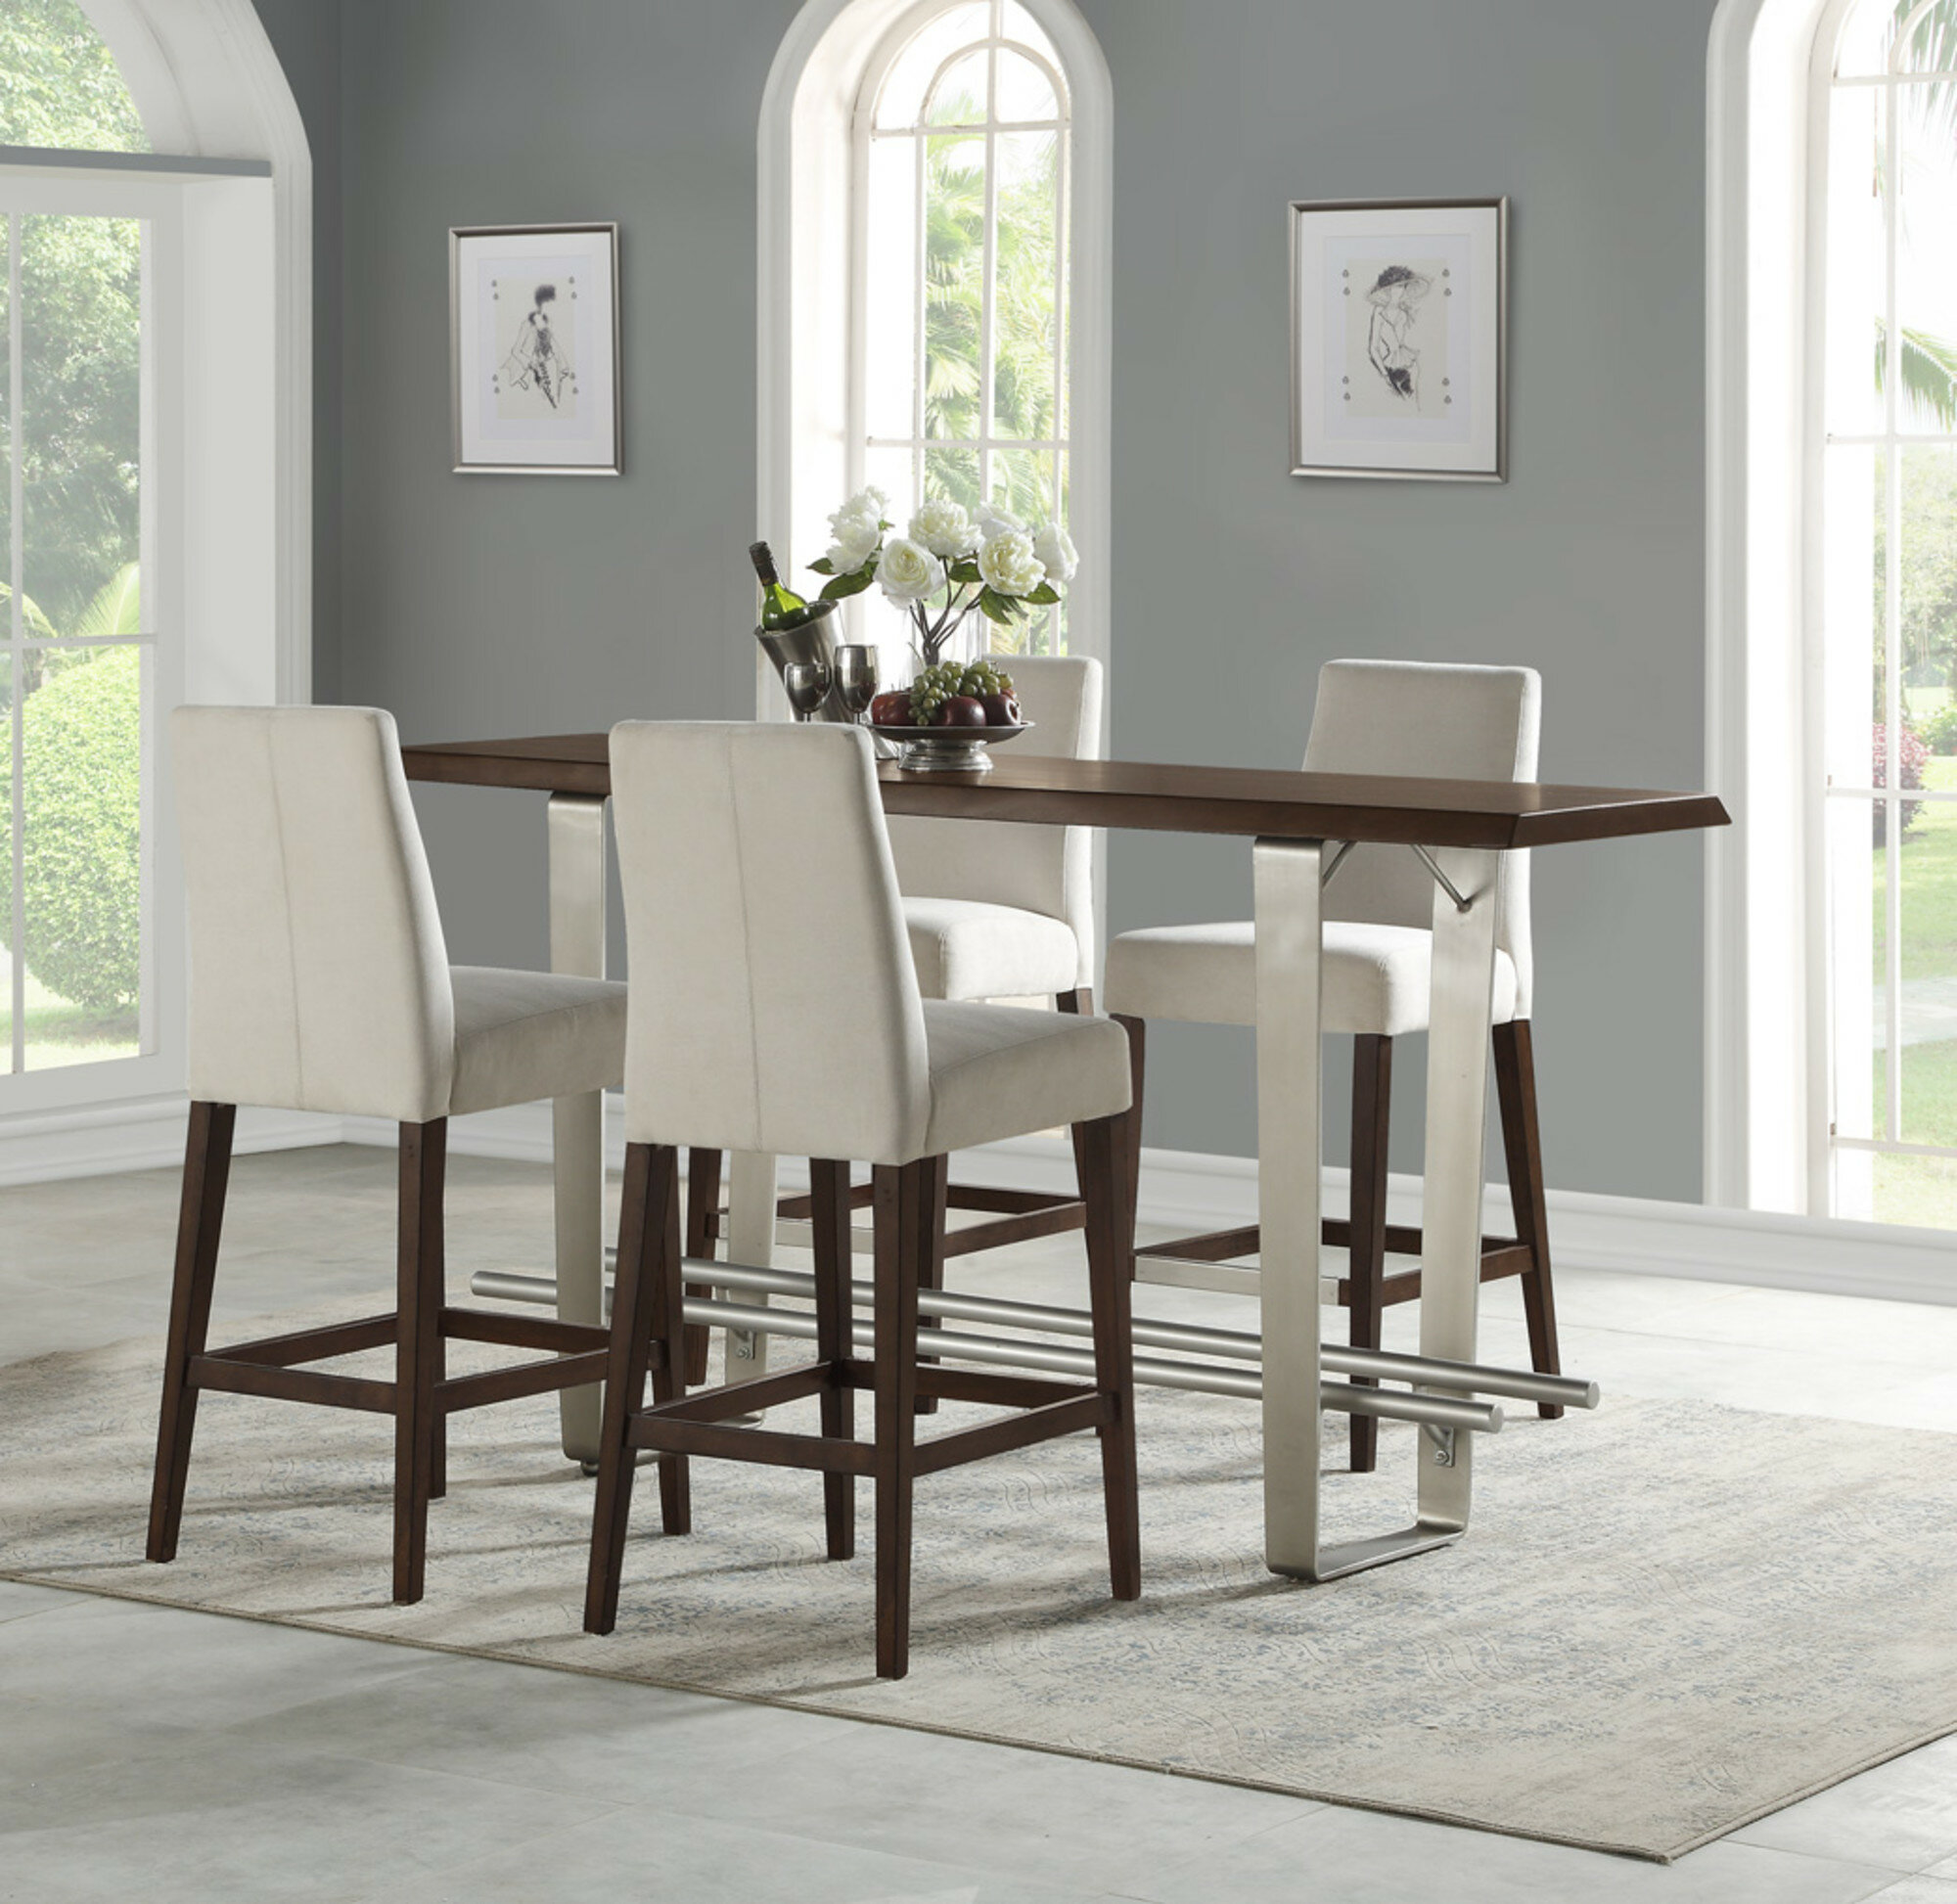 Counter Height Dining Sets Orlando